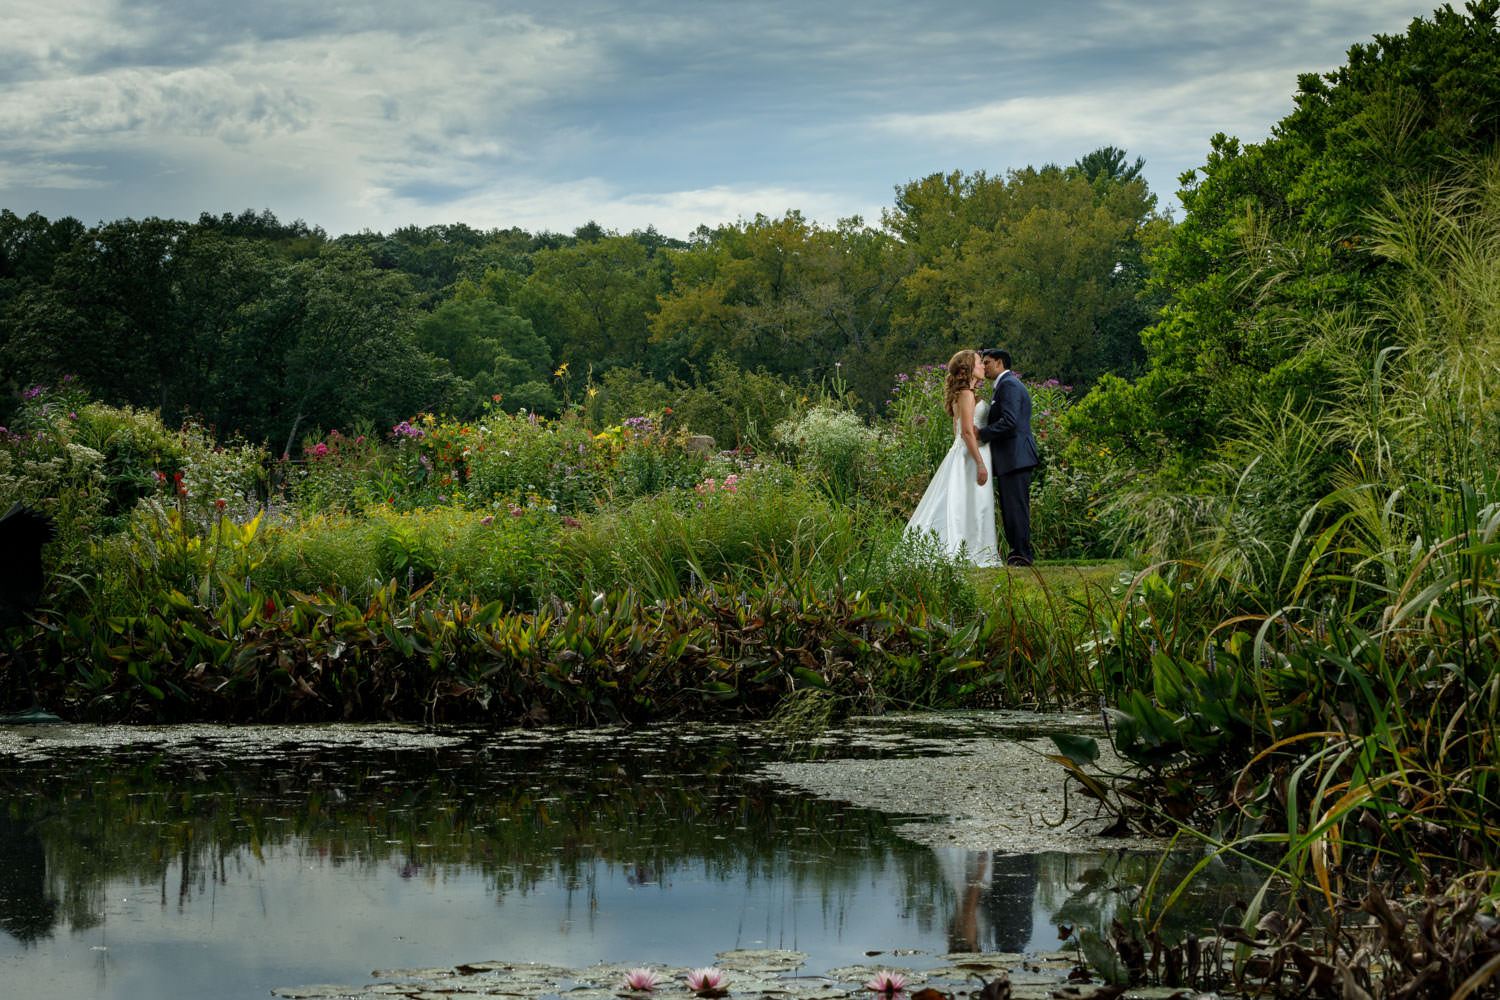 Bride and Groom in garden with reflection in pond